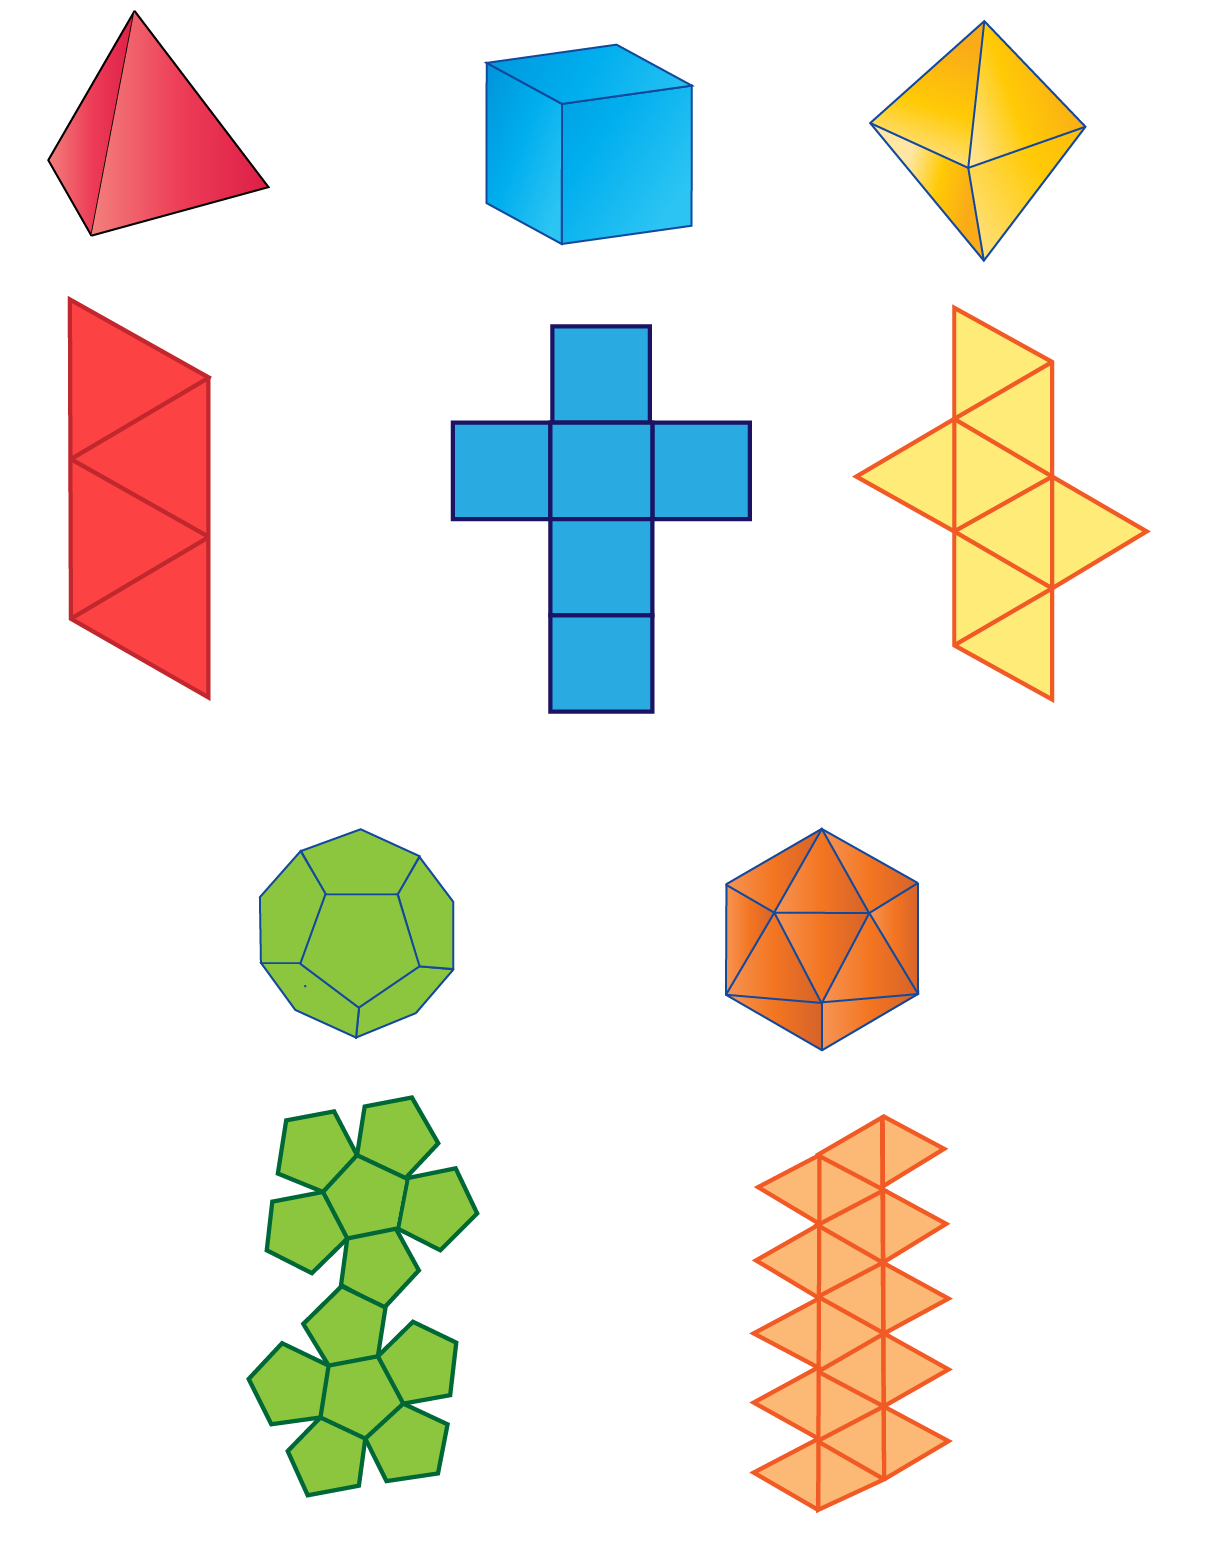 Five platonic solids, three-dimensional figures and their corresponding nets.